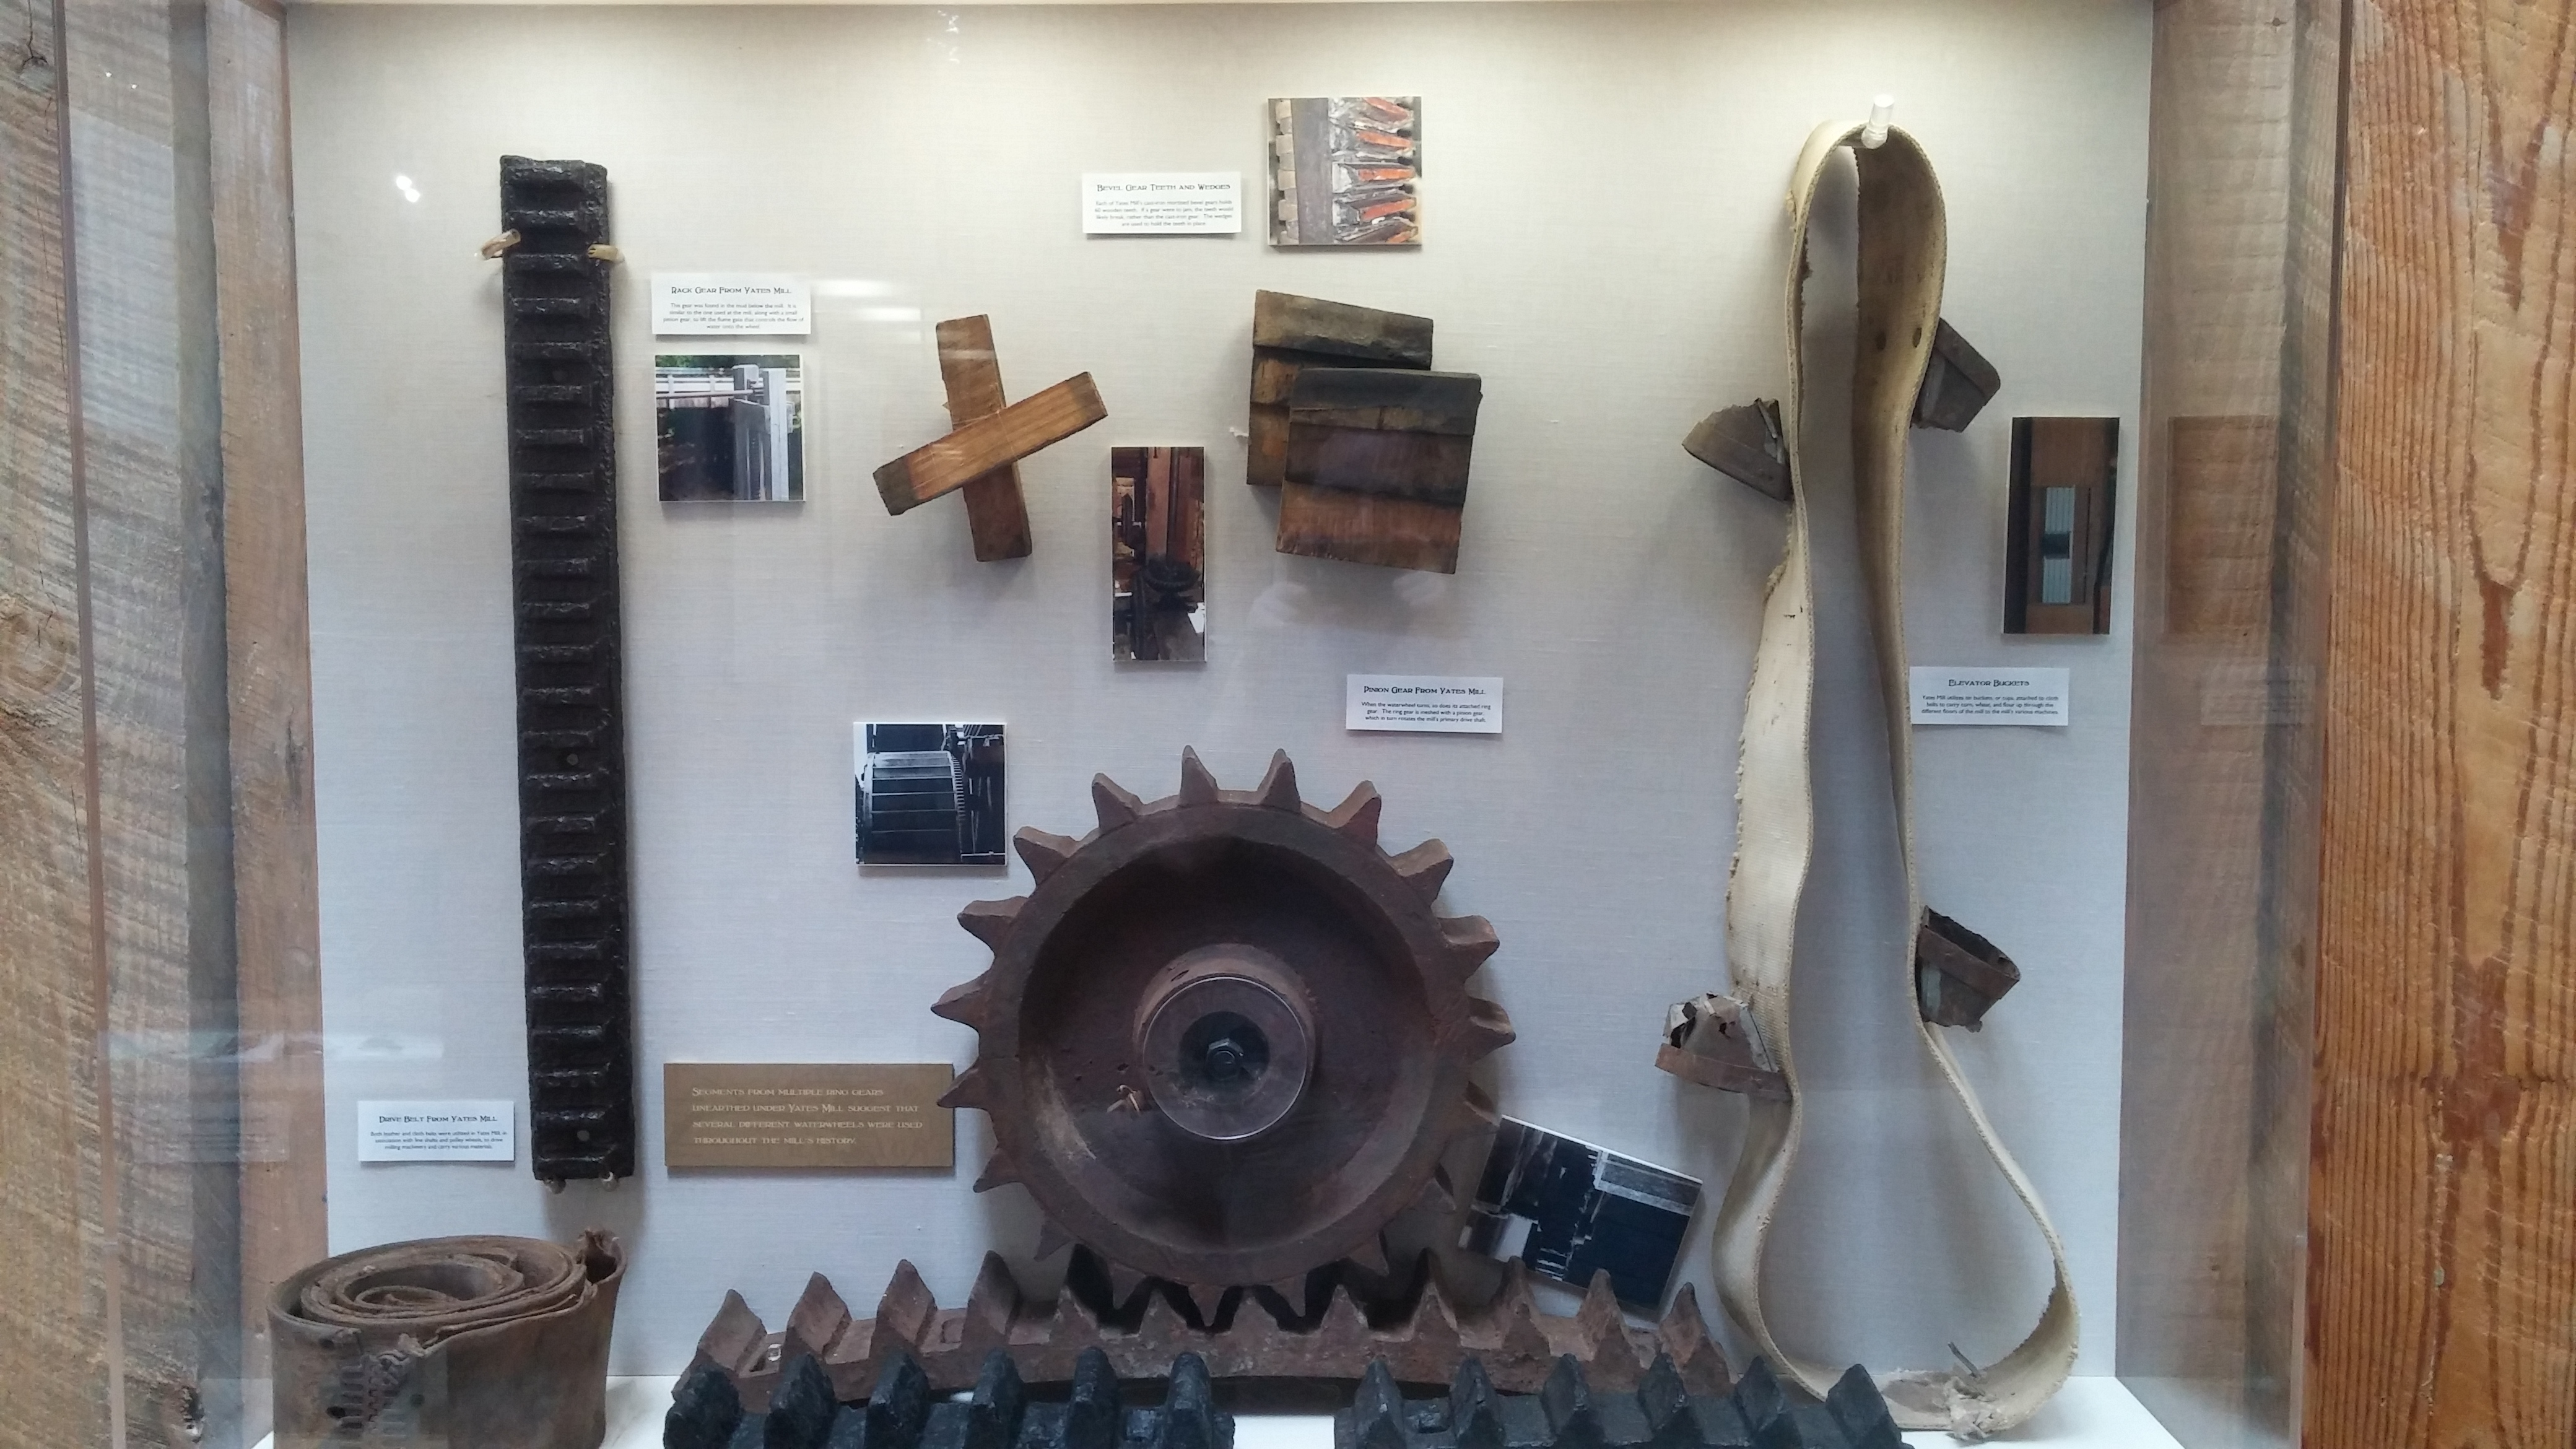 Gears and belts used at Yates Mill. Display located at the A.E. Finley Center.